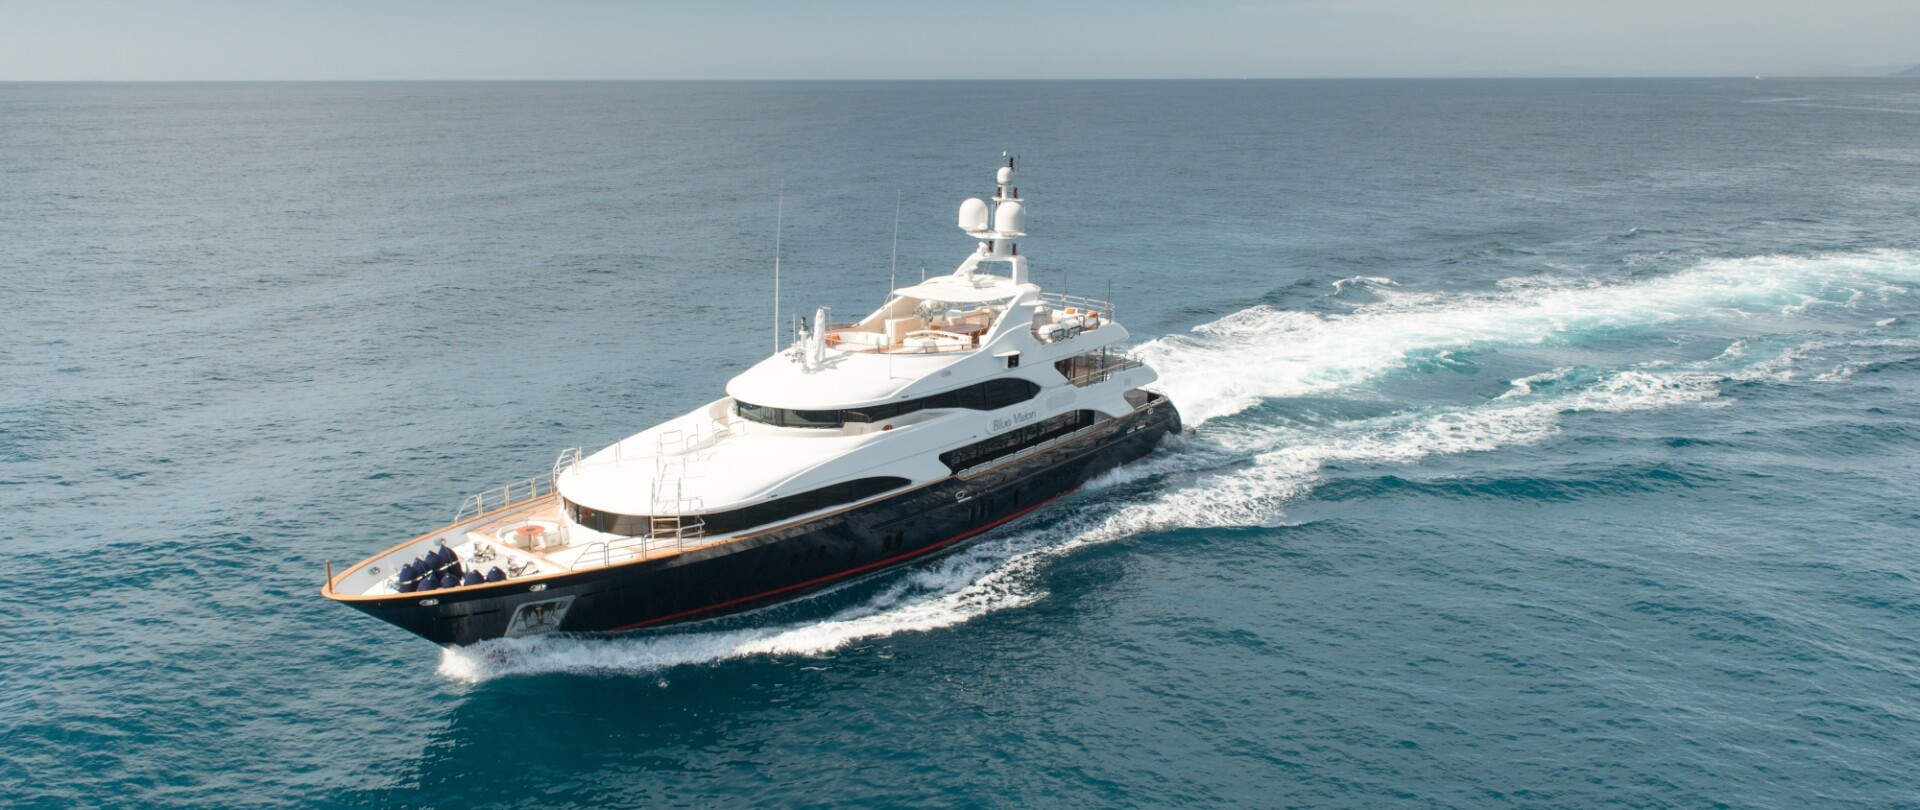 BLUE VISION Available for Mediterranean Charters This Summer photo 1